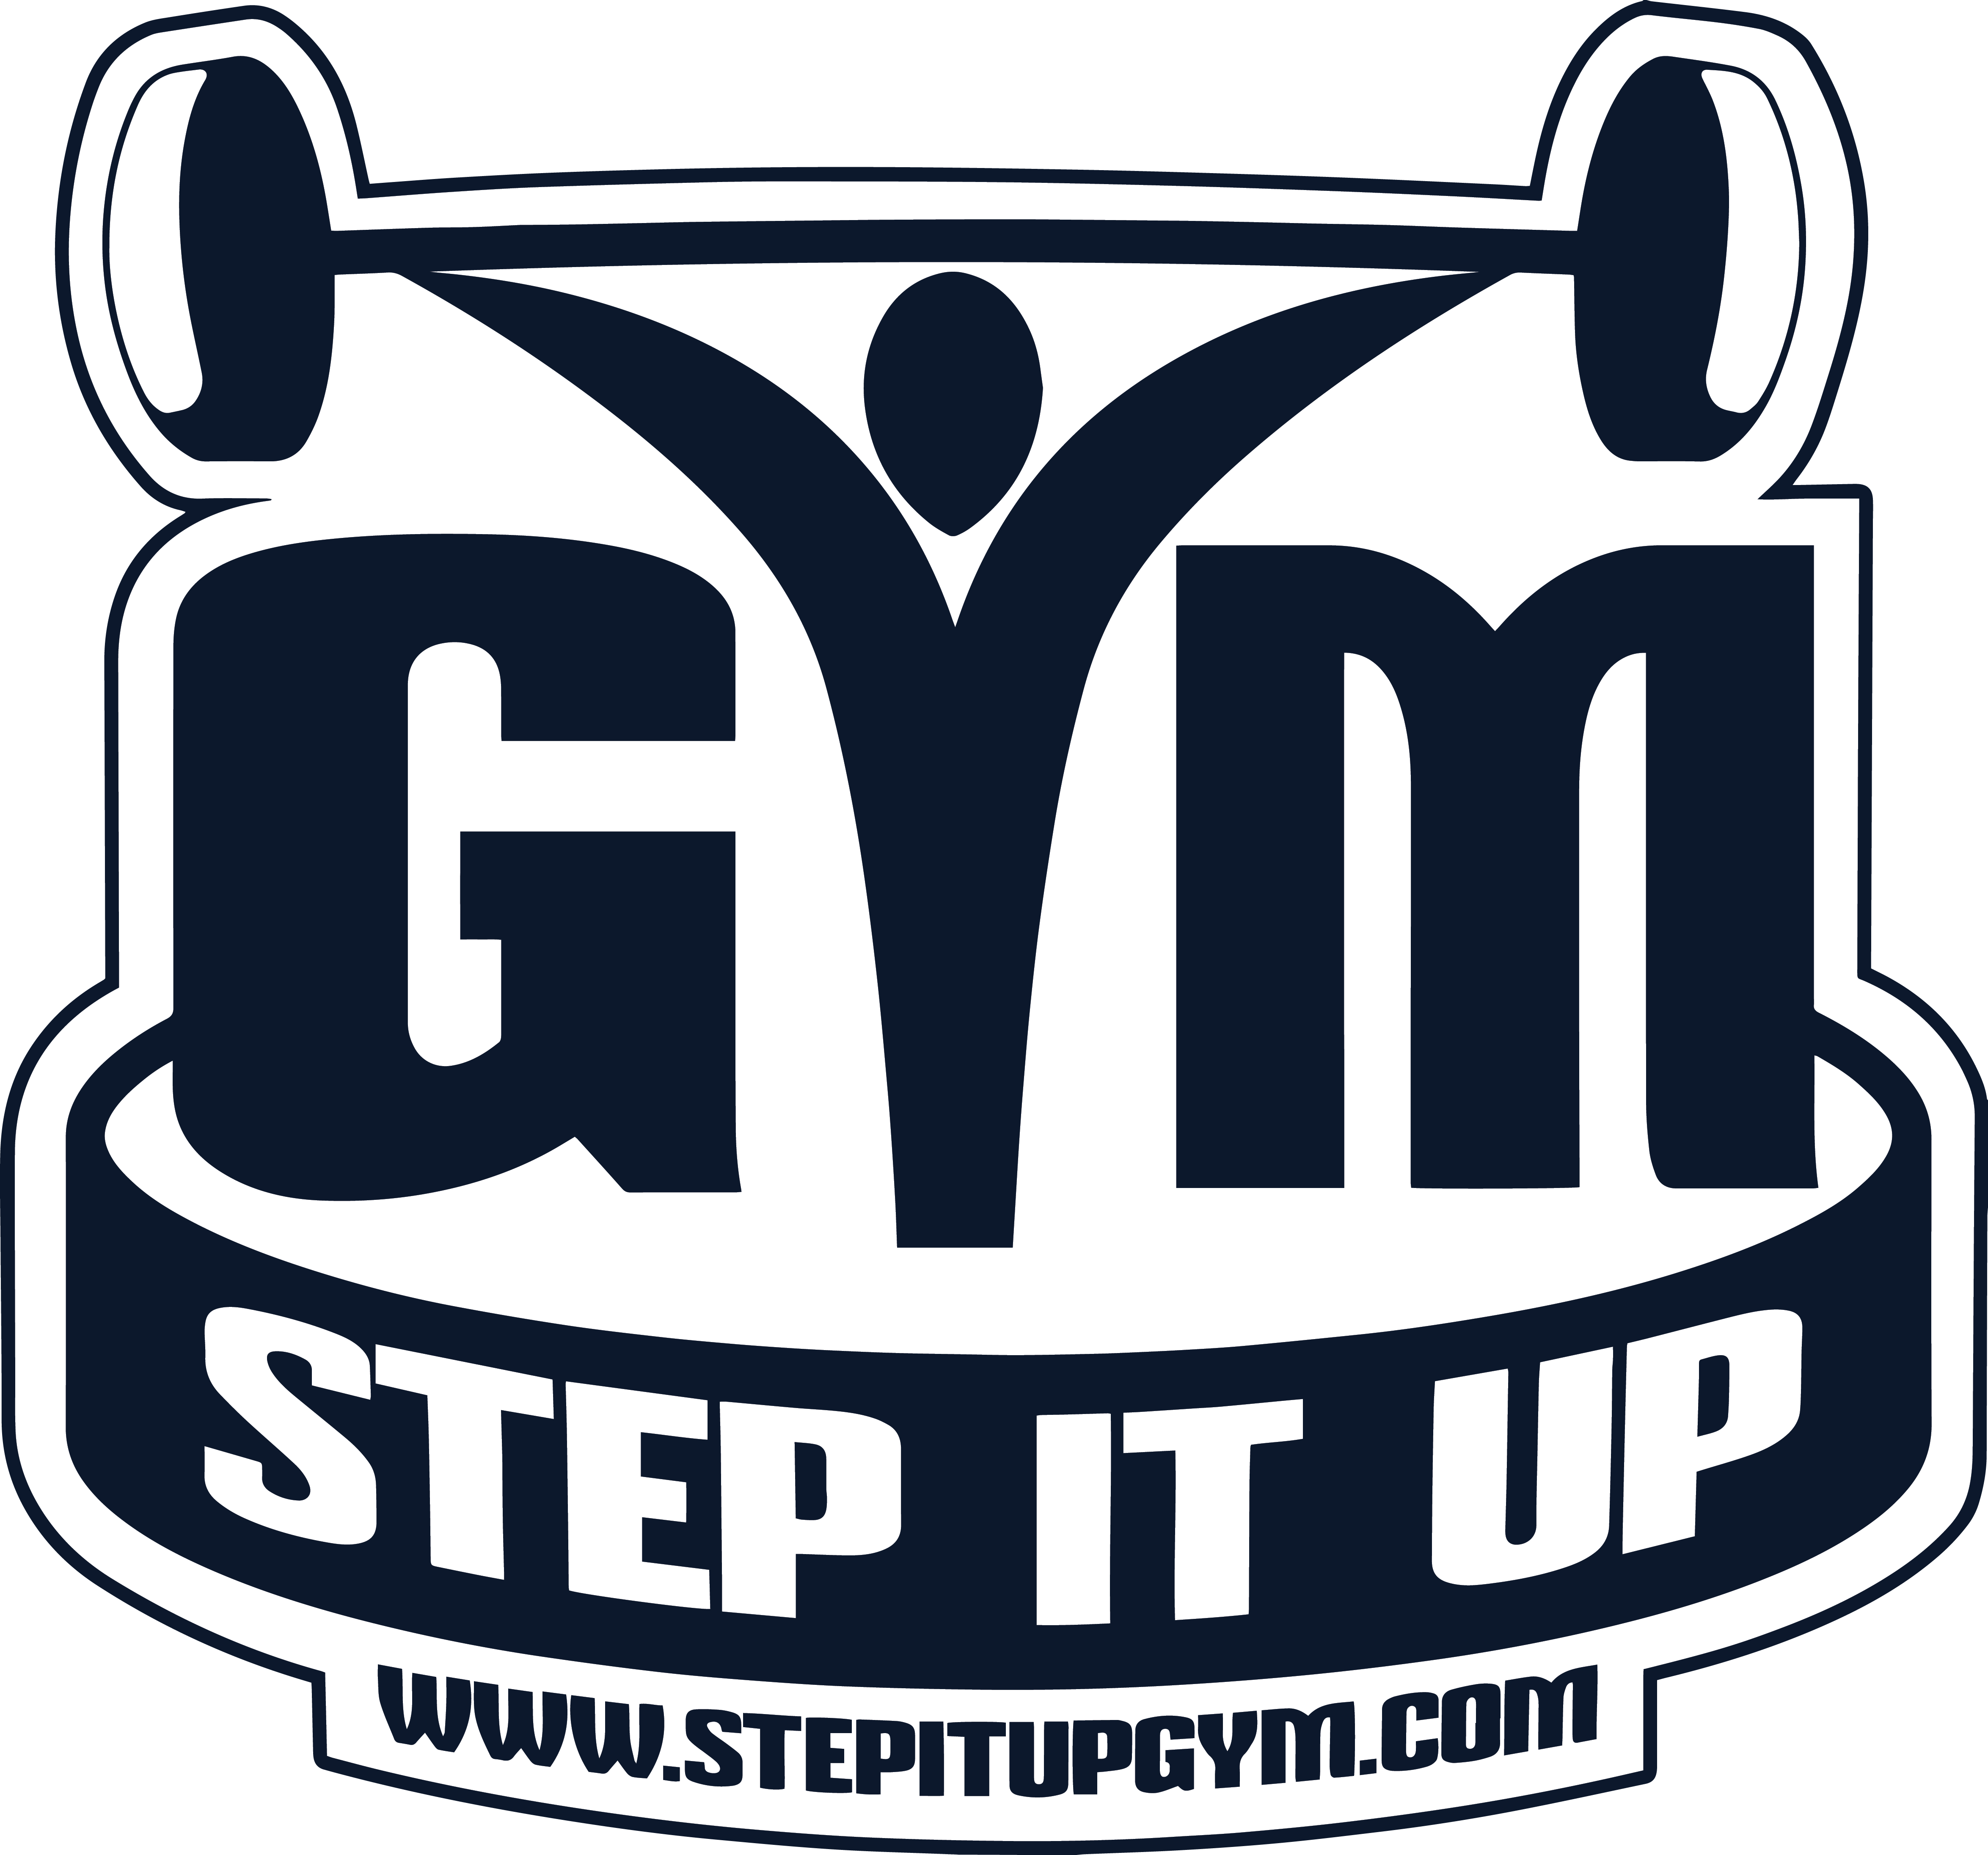 Gym clipart athlete. Personal training coaching step